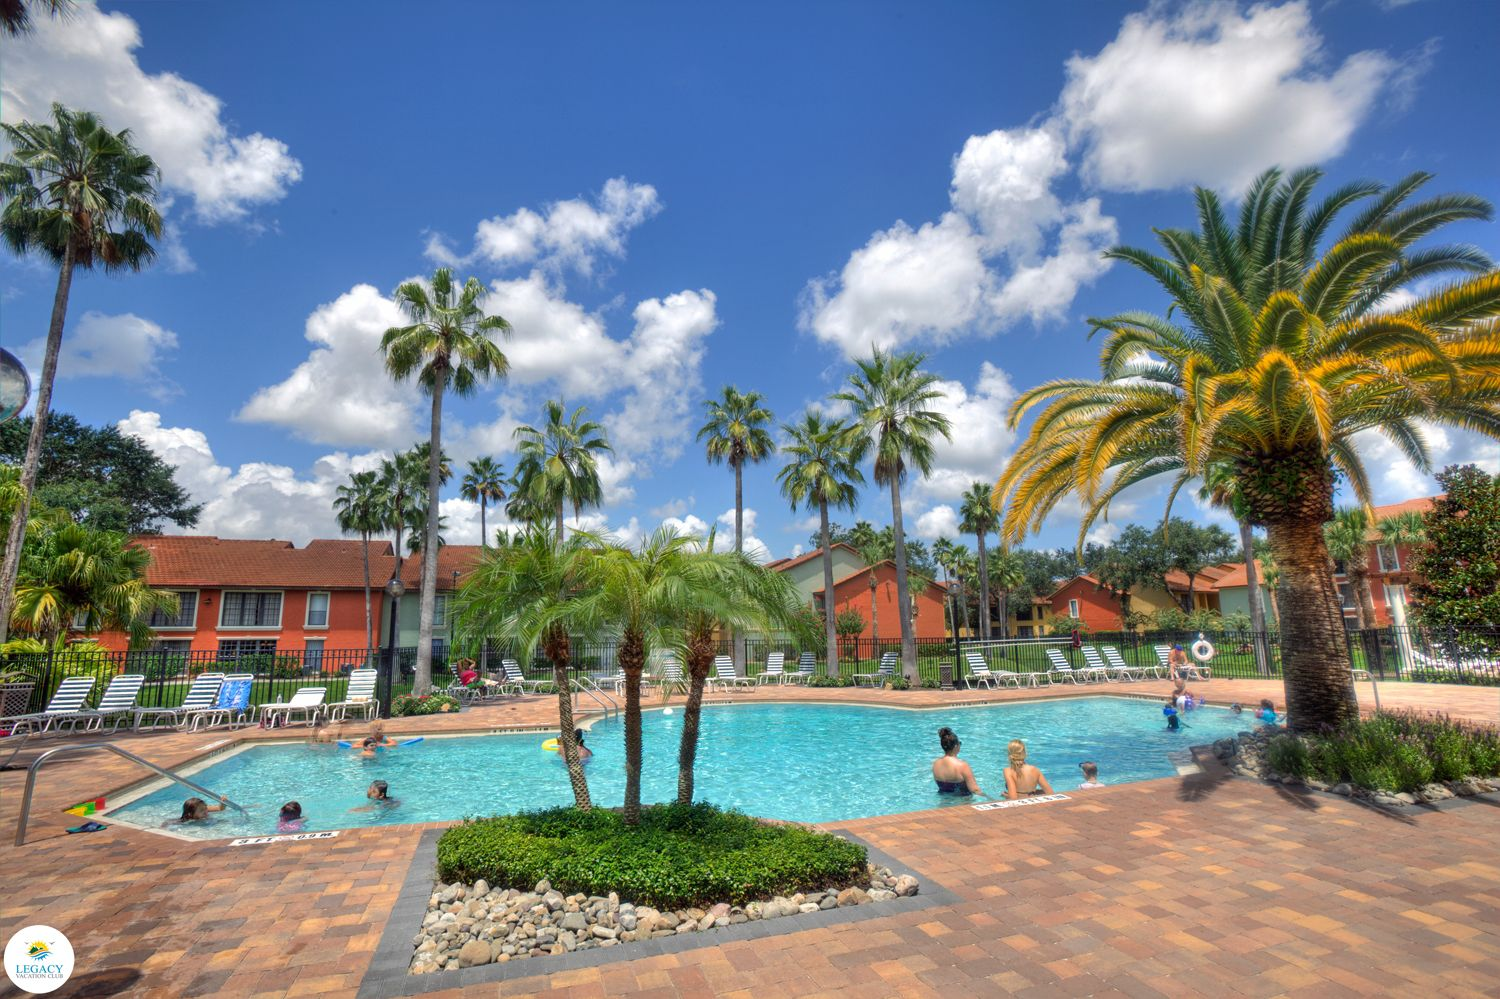 The holidays in Florida at Legacy Vacation Resorts